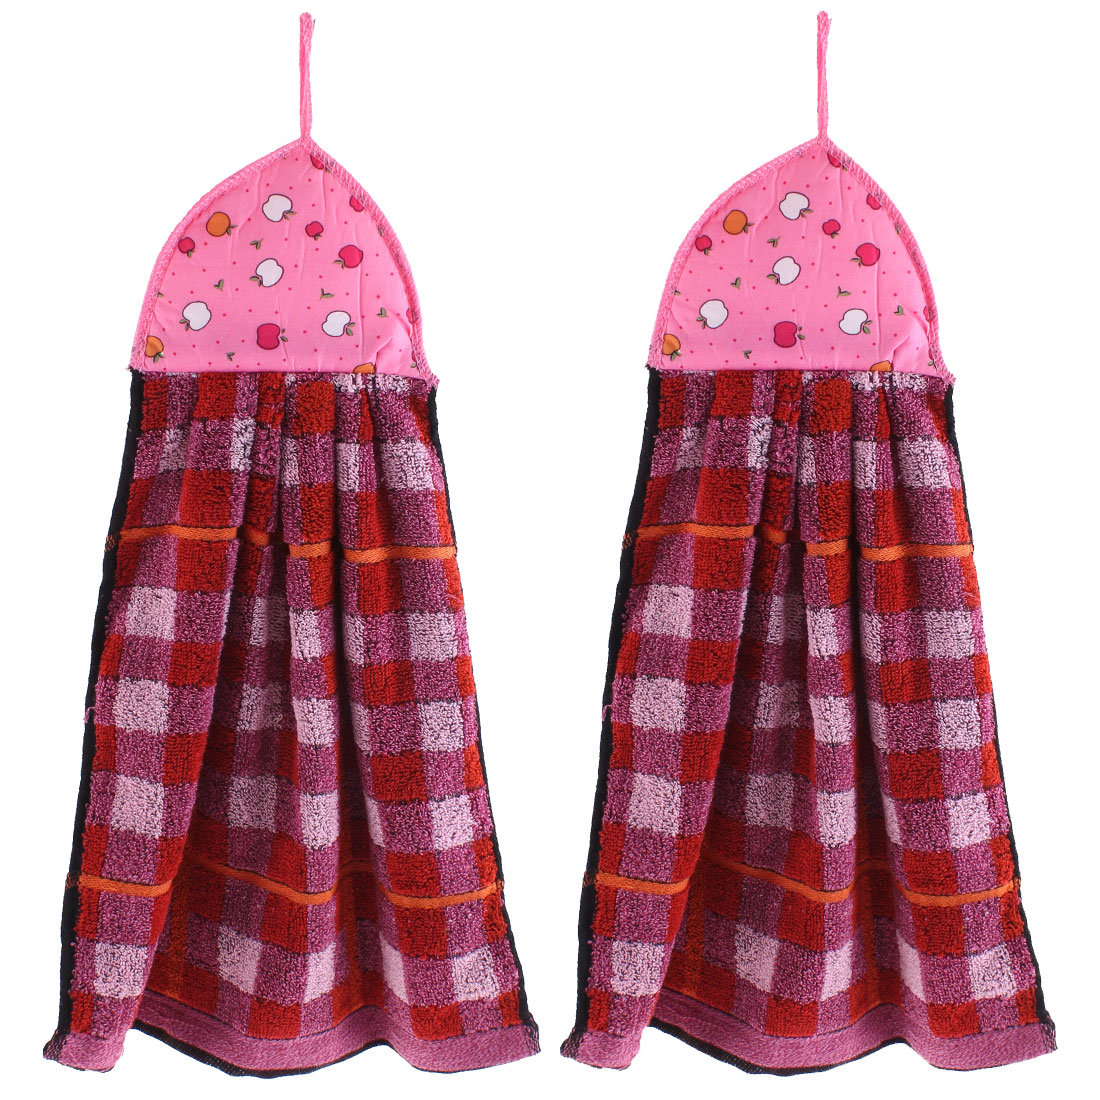 Kitchen Apple Pattern Wall Hanging Hand Drying Towel Pink Red 2 Pcs